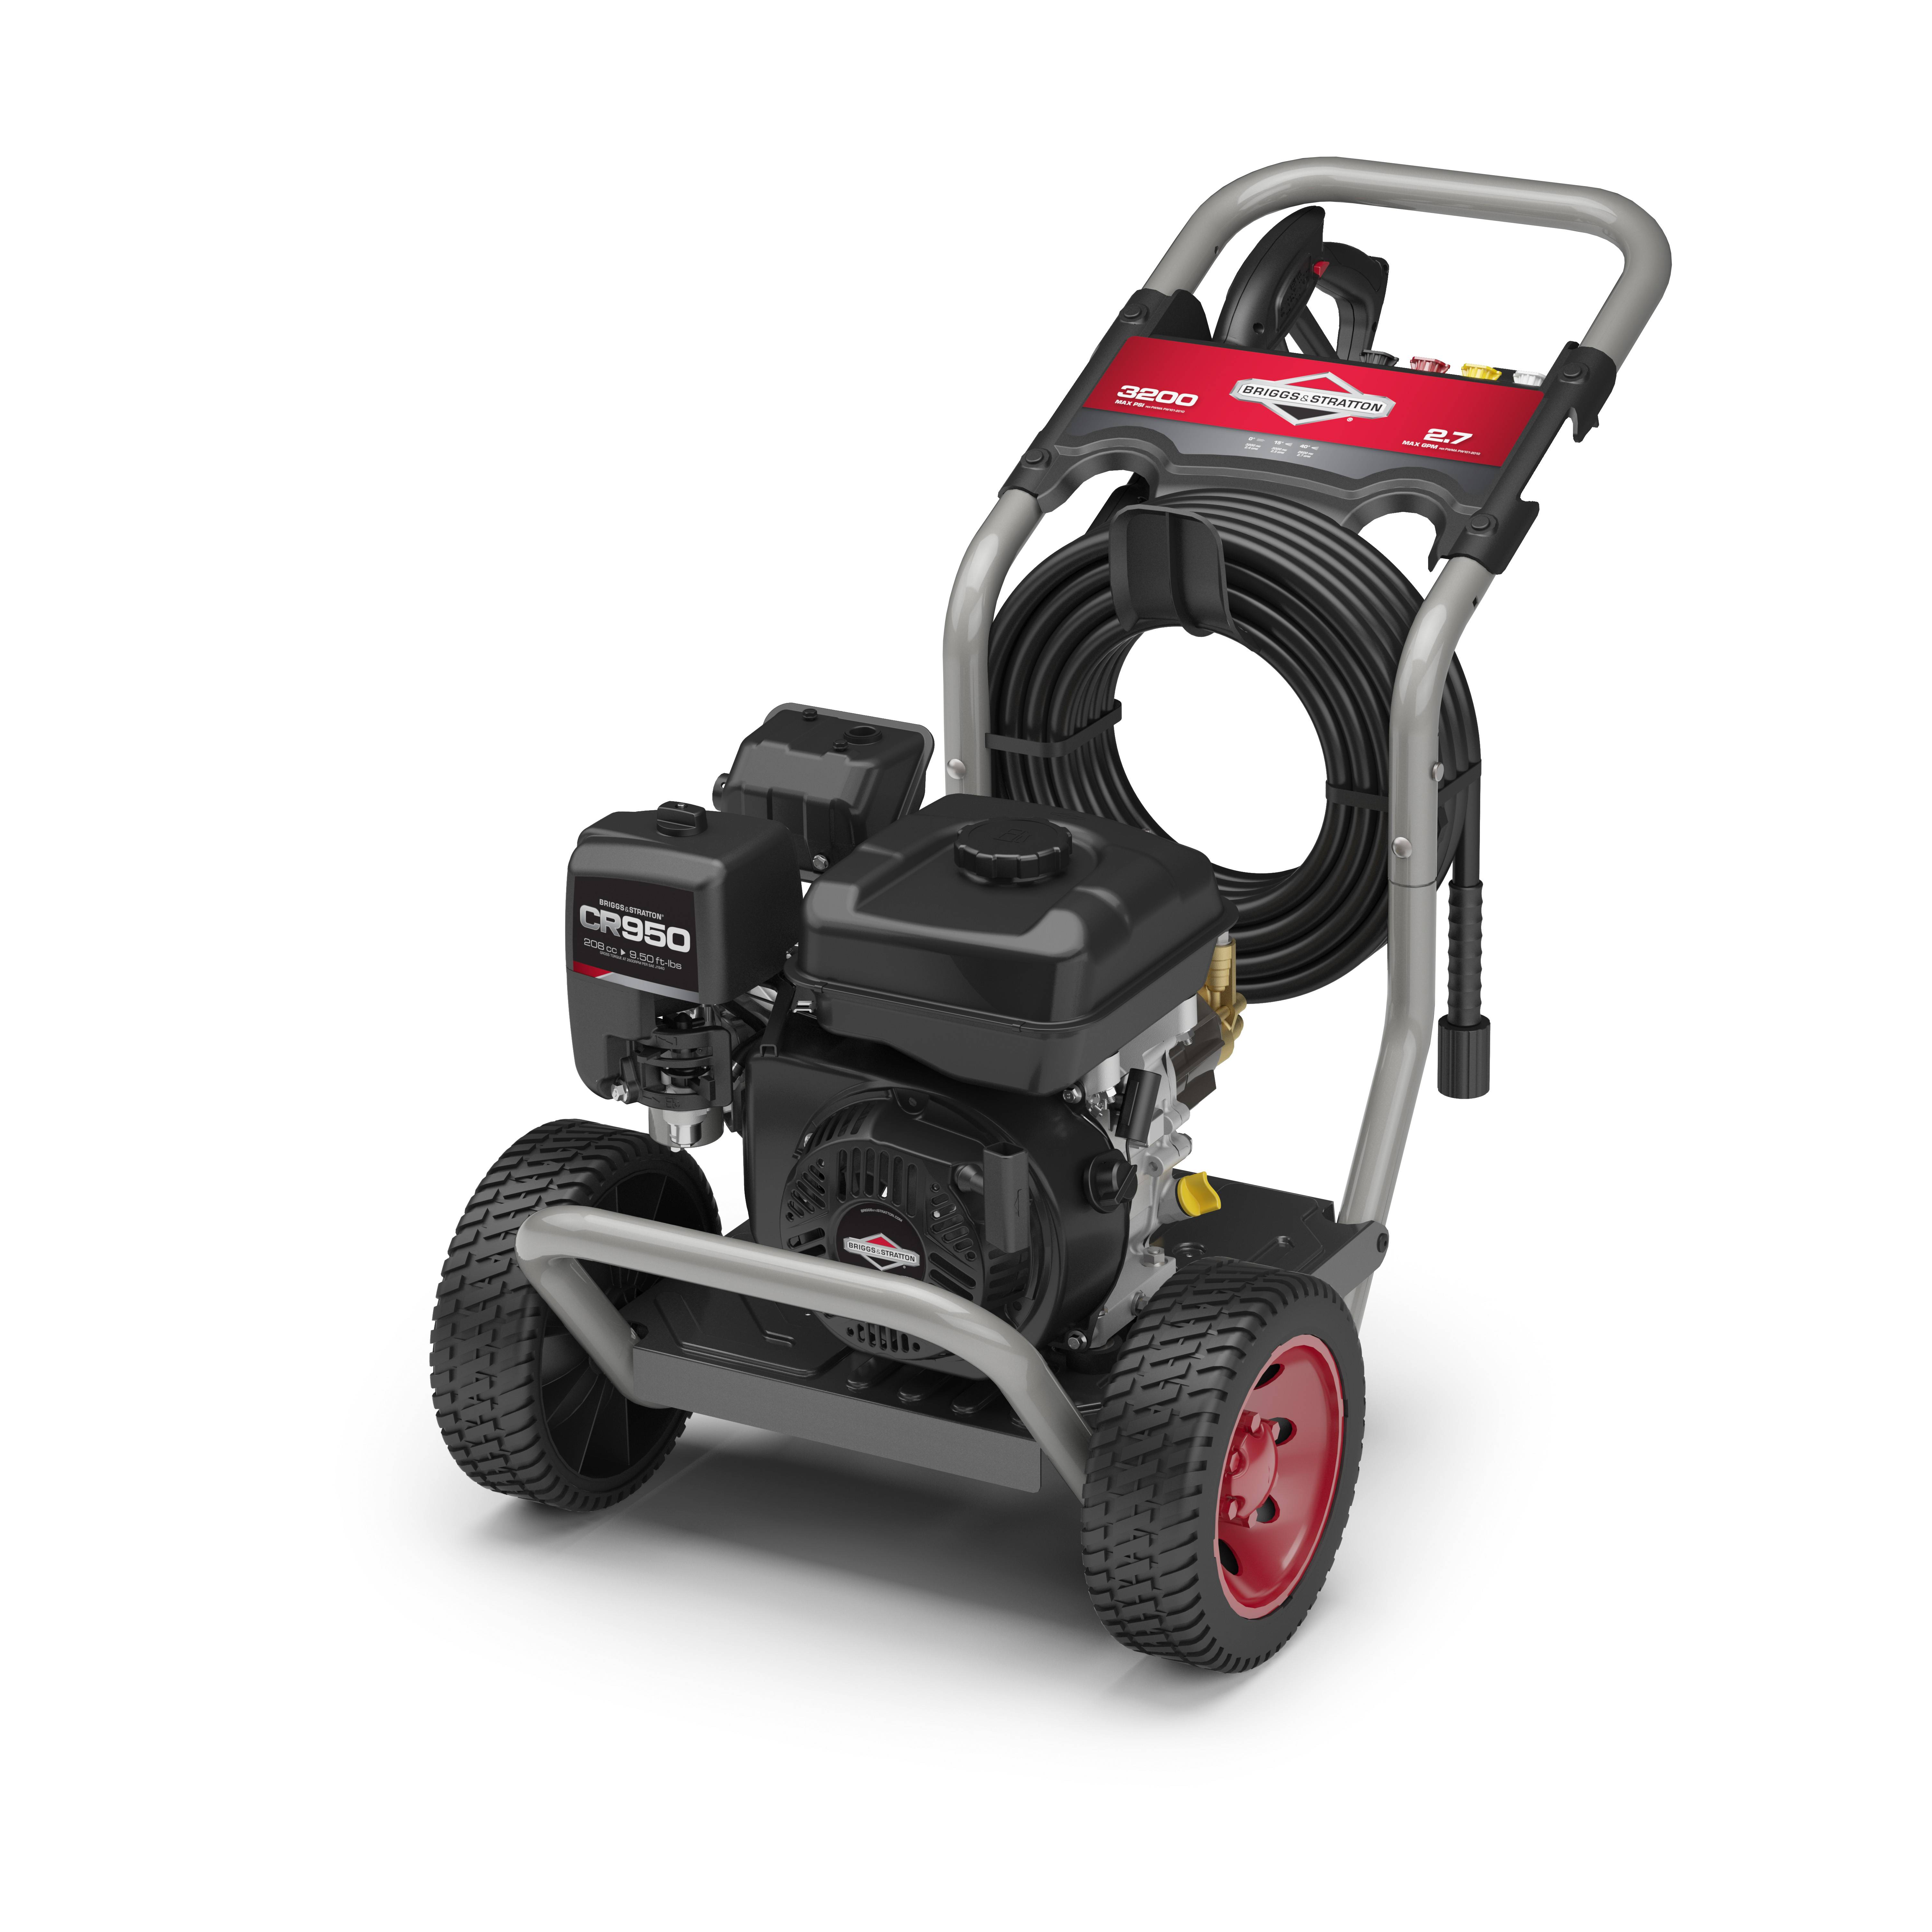 Briggs & Stratton 3200 PSI 5.0 GPM Gas Pressure Washer